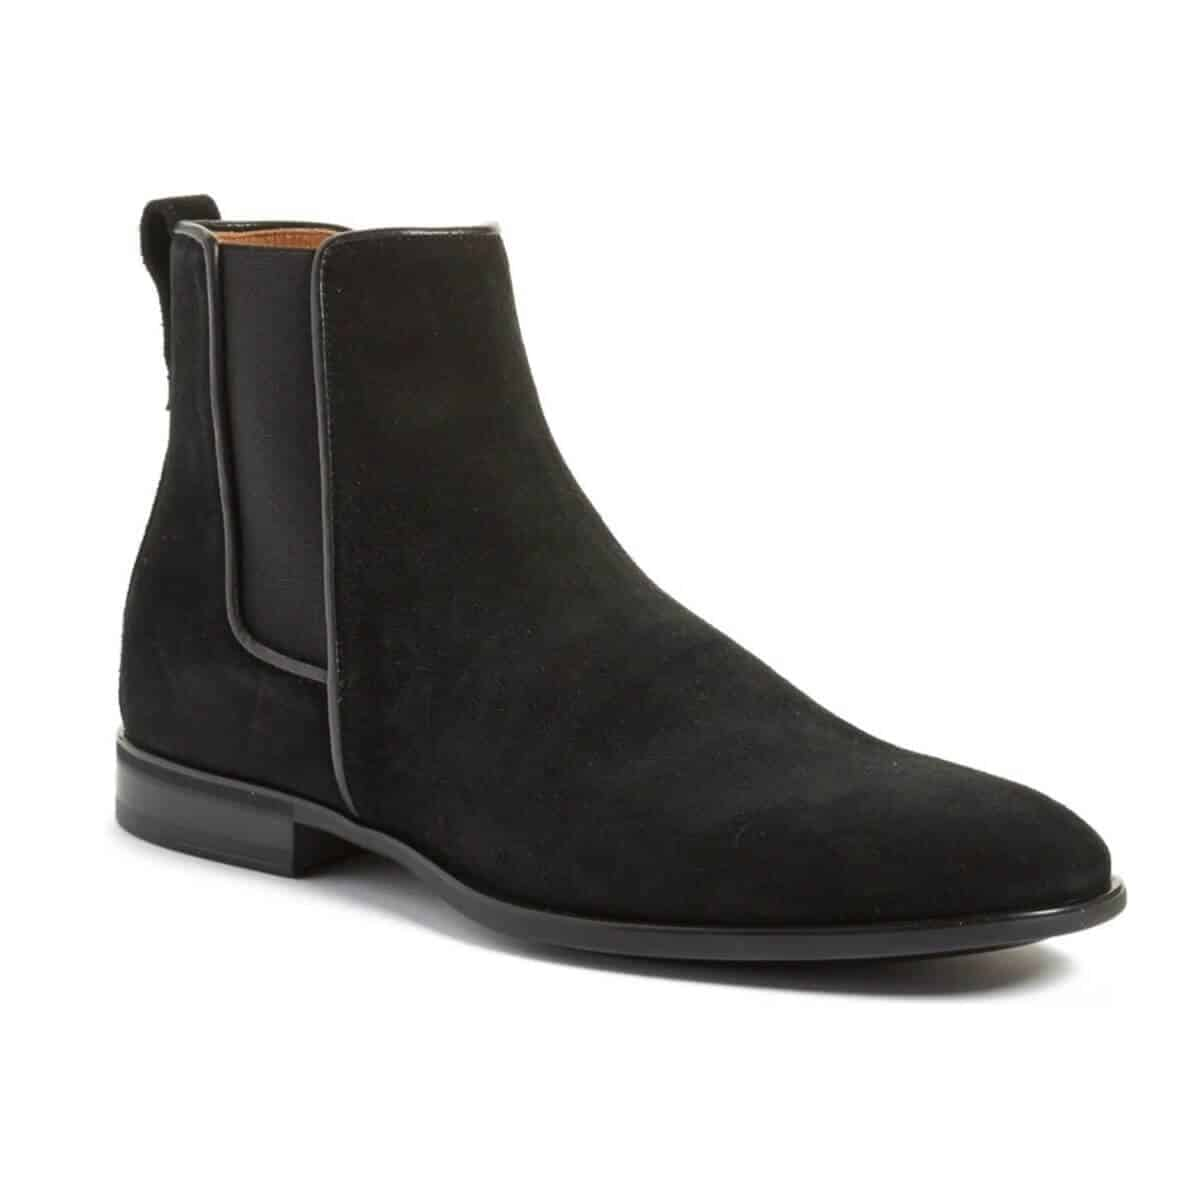 Black suede Chelsea boot.